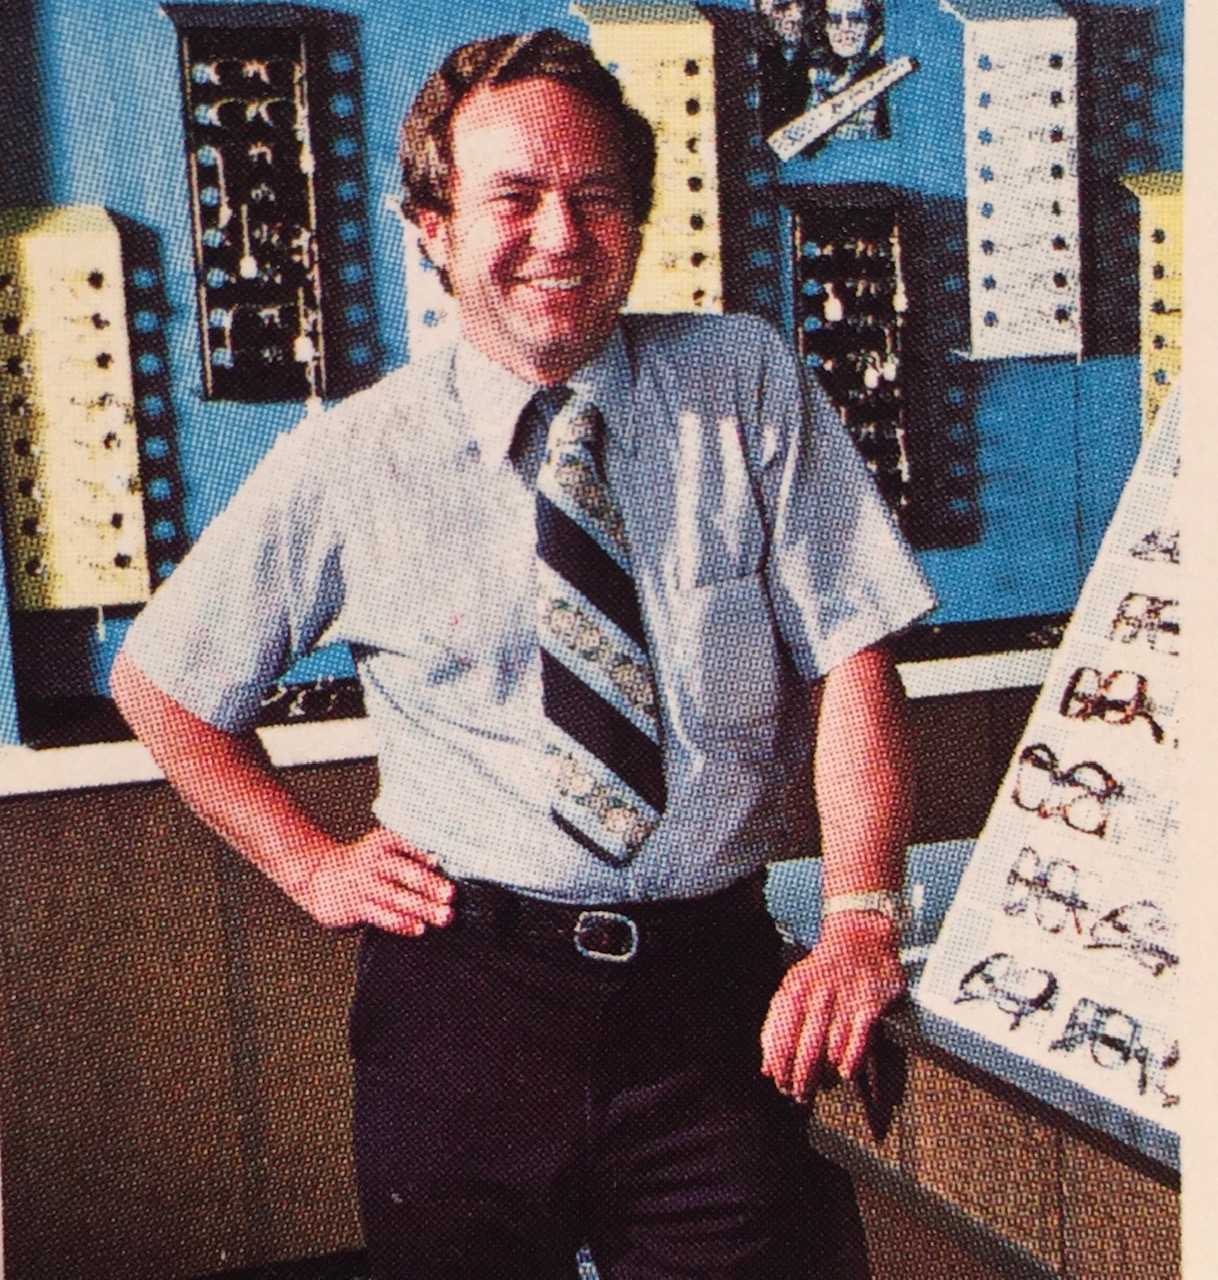 A photo of Ed Cunningham founder of Cunningham Optical One 1970's Era Downtown Fort Wayne, IN